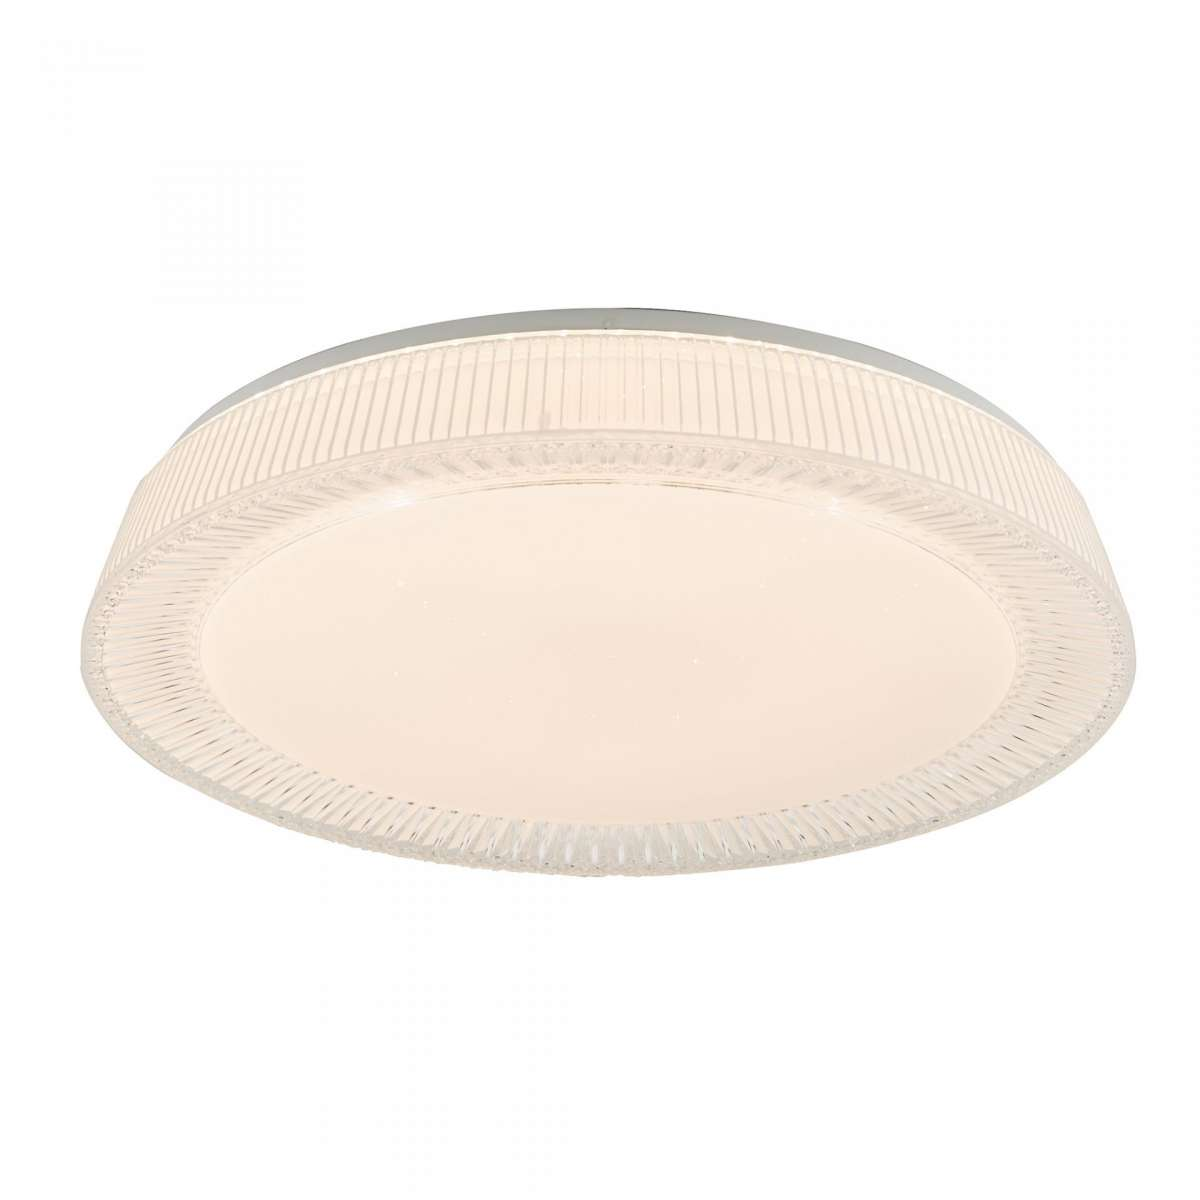 Dar Lighting UDE482 Udell Flush Acrylic 36W LED Ceiling Light